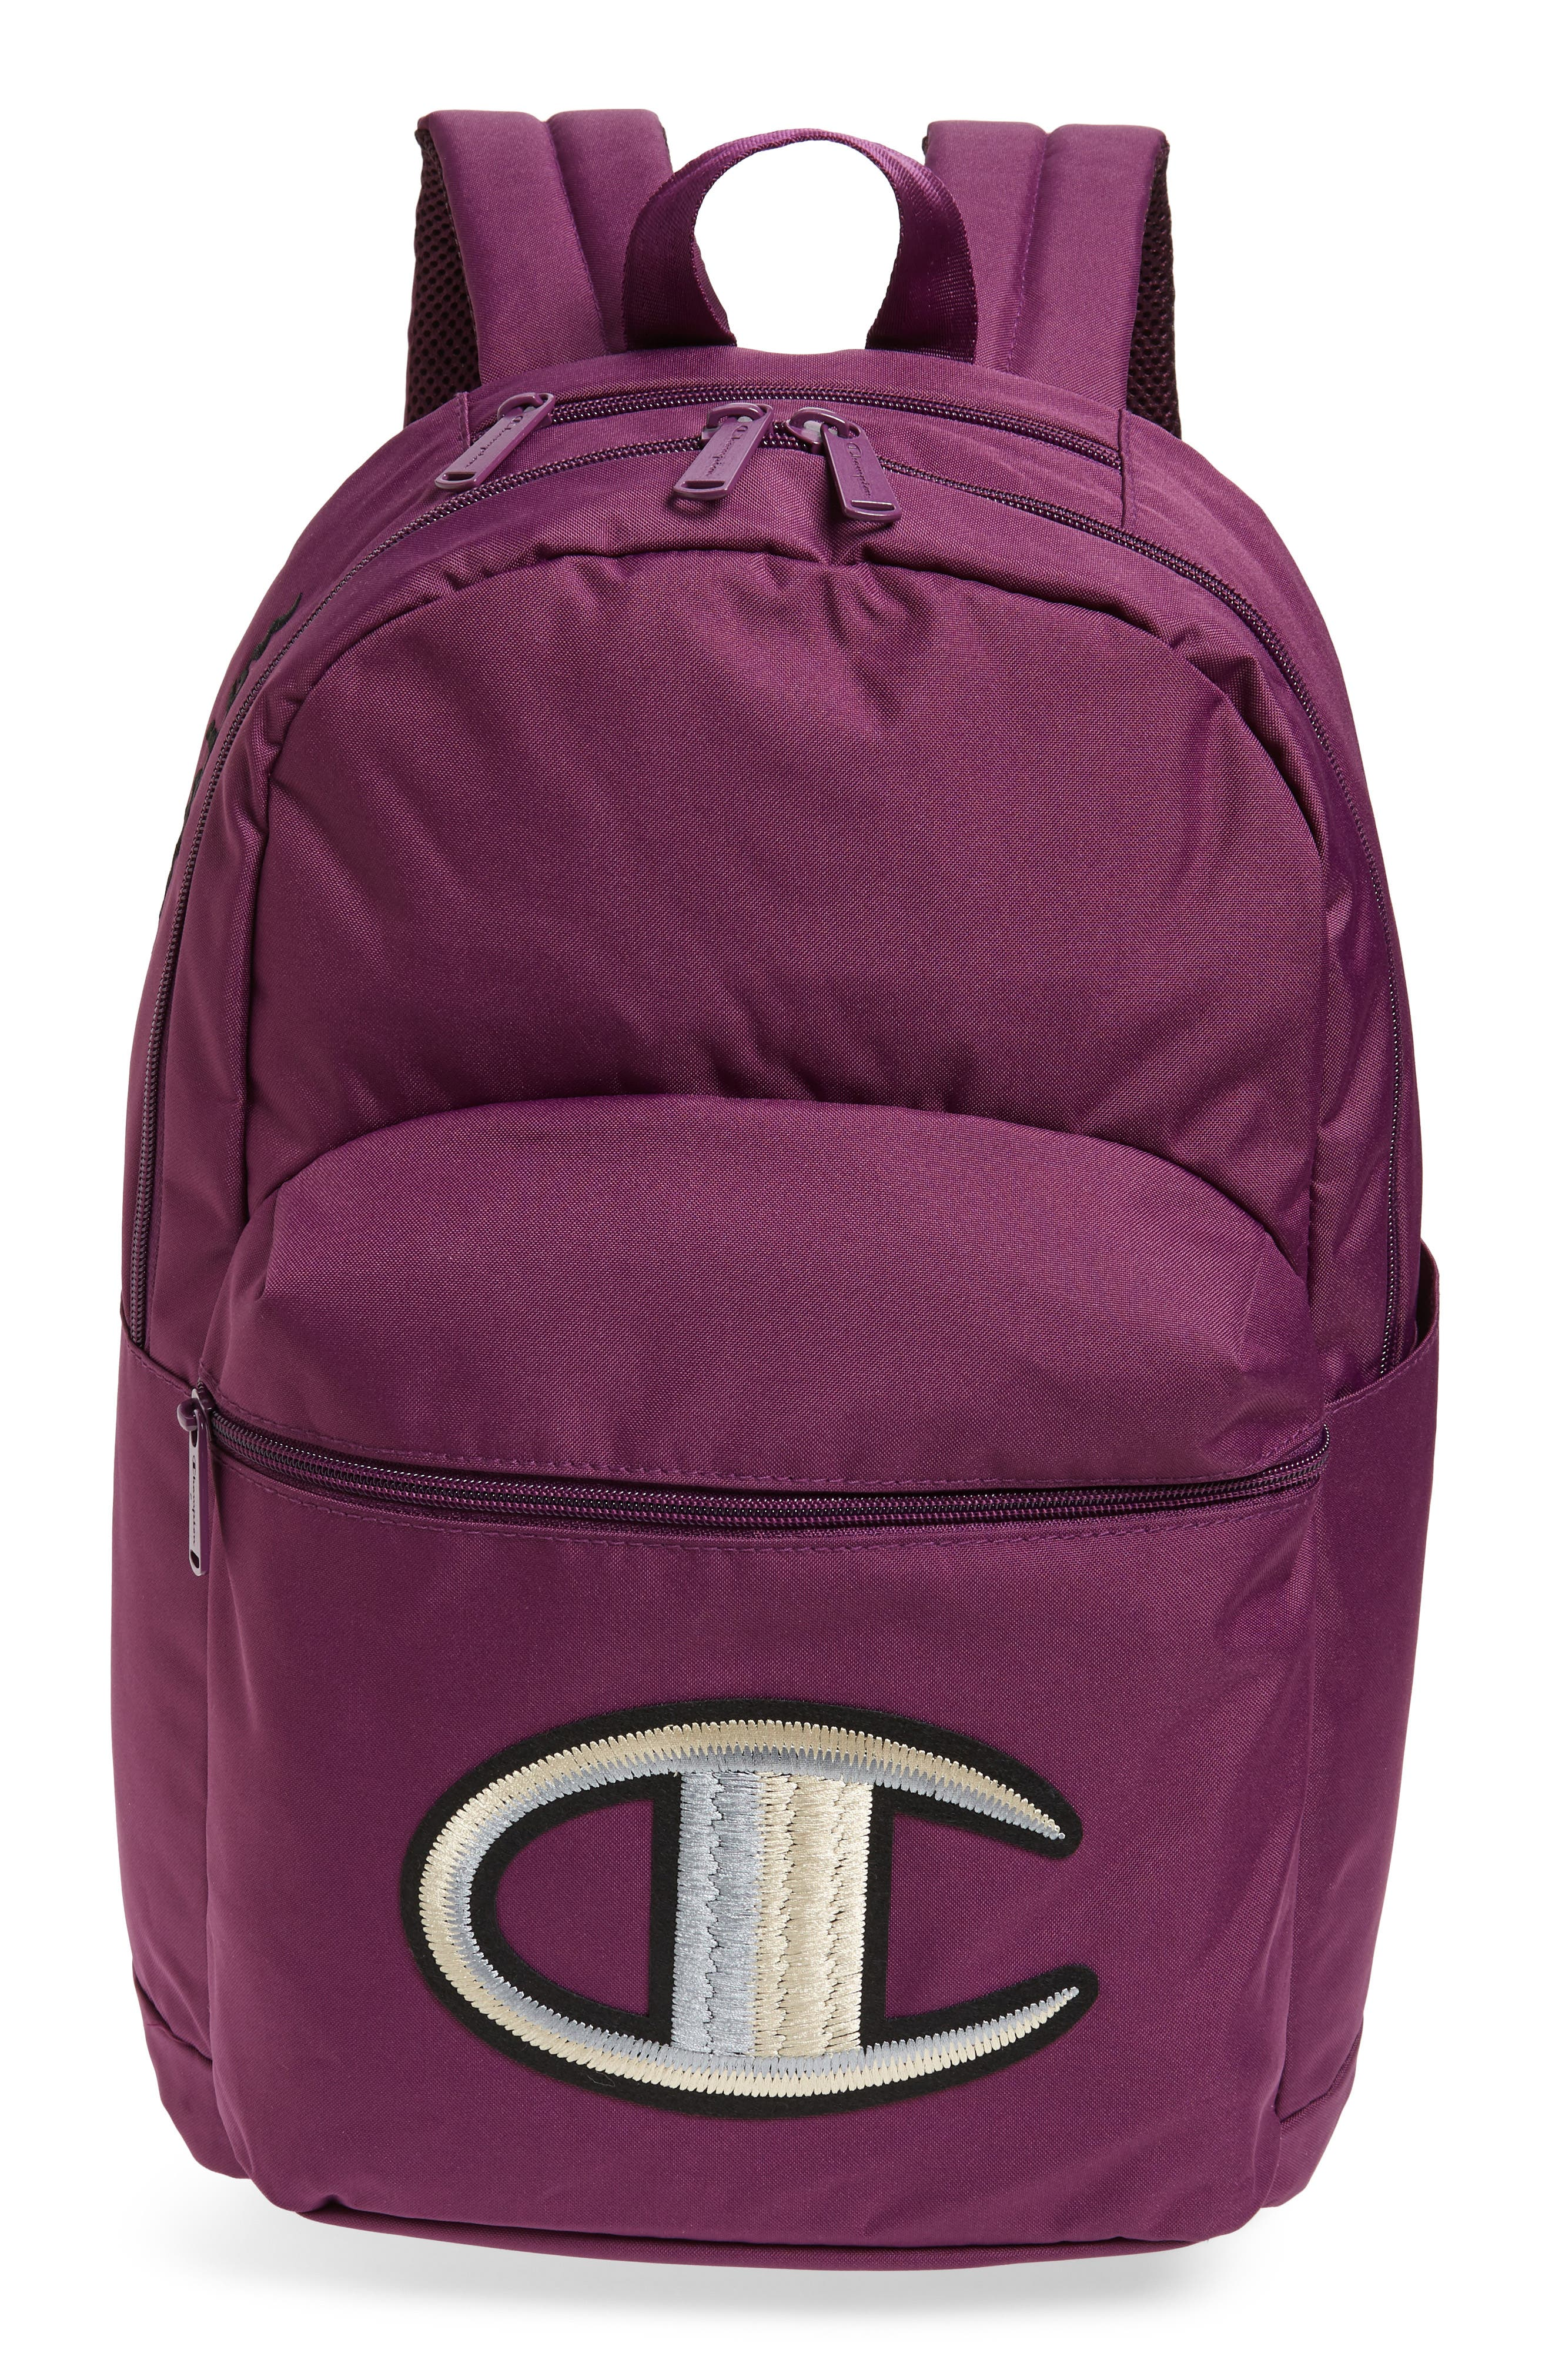 Supercize Logo Backpack by Champion